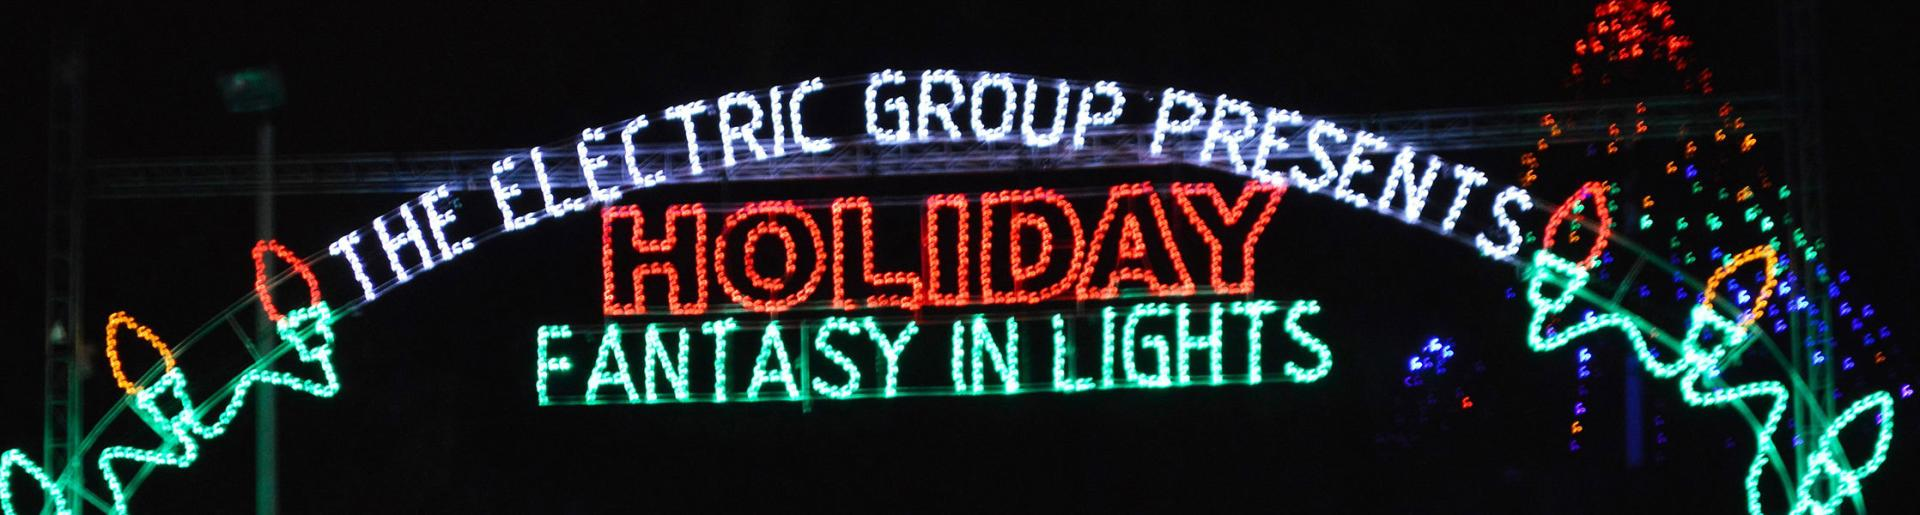 The entrance sign to Holiday Fantasy in Lights